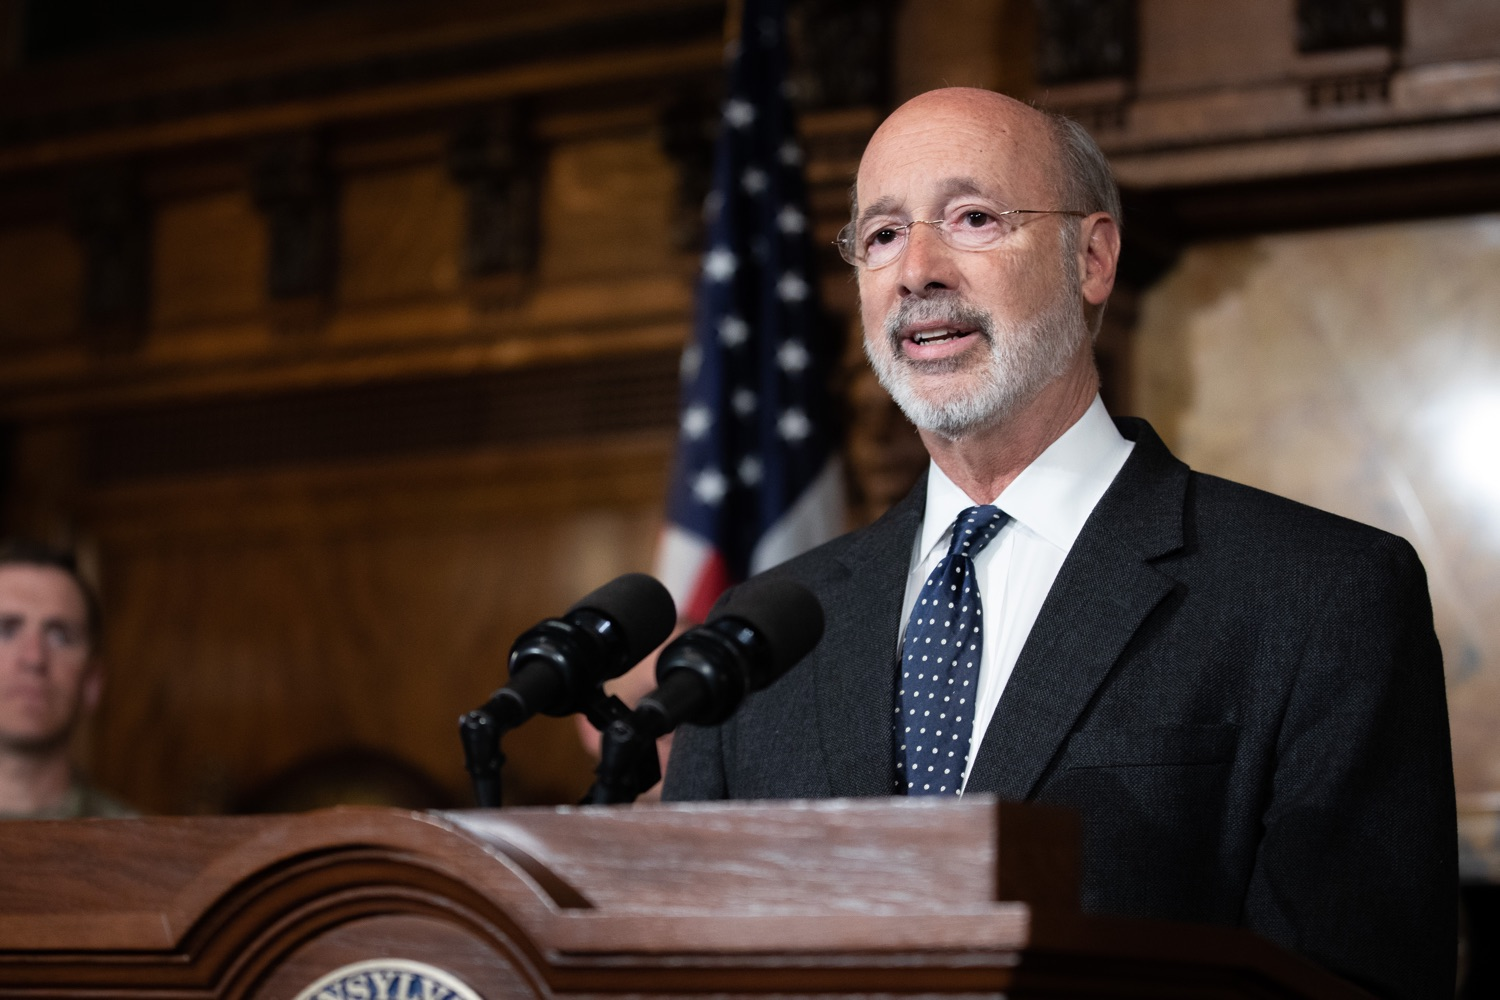 "<a href=""http://filesource.abacast.com/commonwealthofpa/photo/17423_gov_trip_recap_dz_015.jpg"" target=""_blank"">⇣ Download Photo<br></a>Harrisburg, PA  Governor Tom Wolf speaking about his recent visit to Lithuania and Poland.  Governor Tom Wolf today highlighted the second half of his trip abroad, including visiting with more than 500 PA National Guard (PNG) troops in Poland, and honoring the Tree of Life synagogue victims at the Auschwitz-Birkenau Memorial. Tuesday, September 17, 2019"